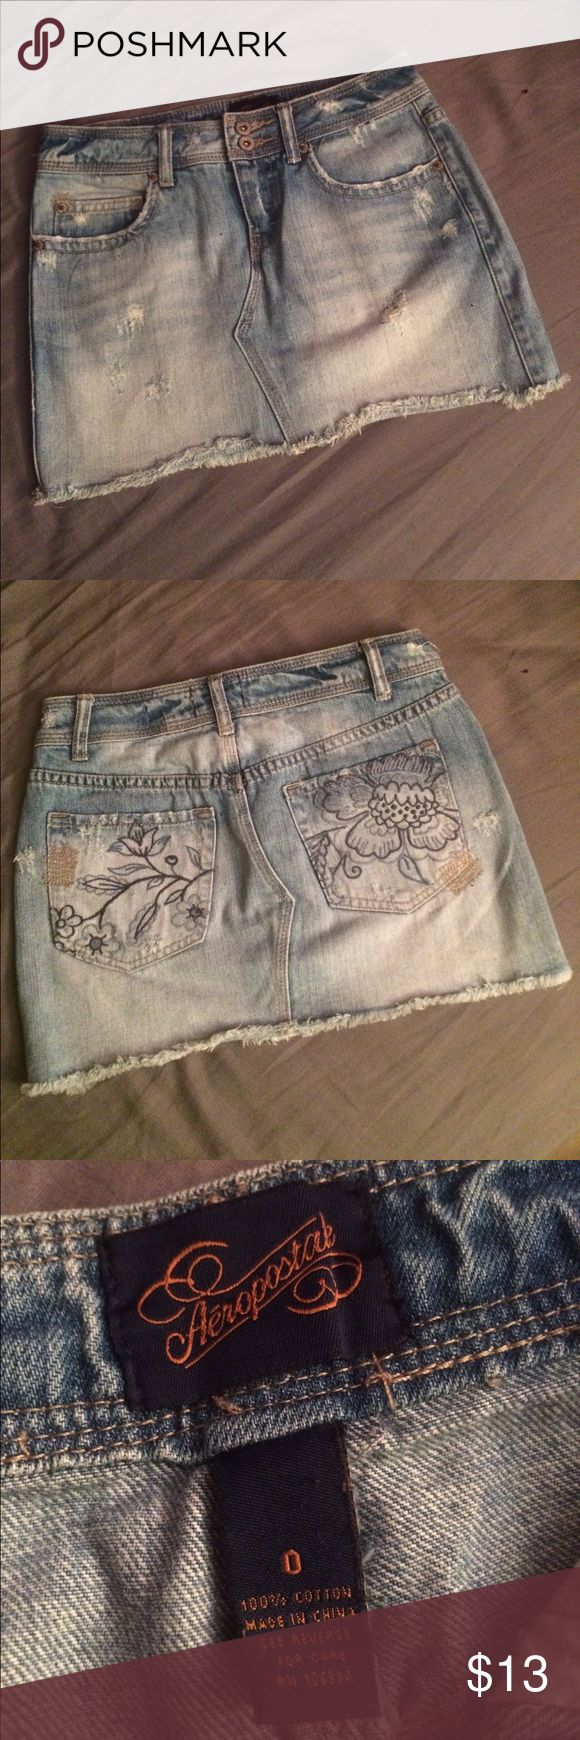 Distressed Denim Miniskirt Distressed denim miniskirt from Aeropostale. 100% cotton. Embroidered back pockets. Like new, no stains. I don't actually remember ever wearing this, it's too small on me. Make an offer. Aeropostale Skirts Mini